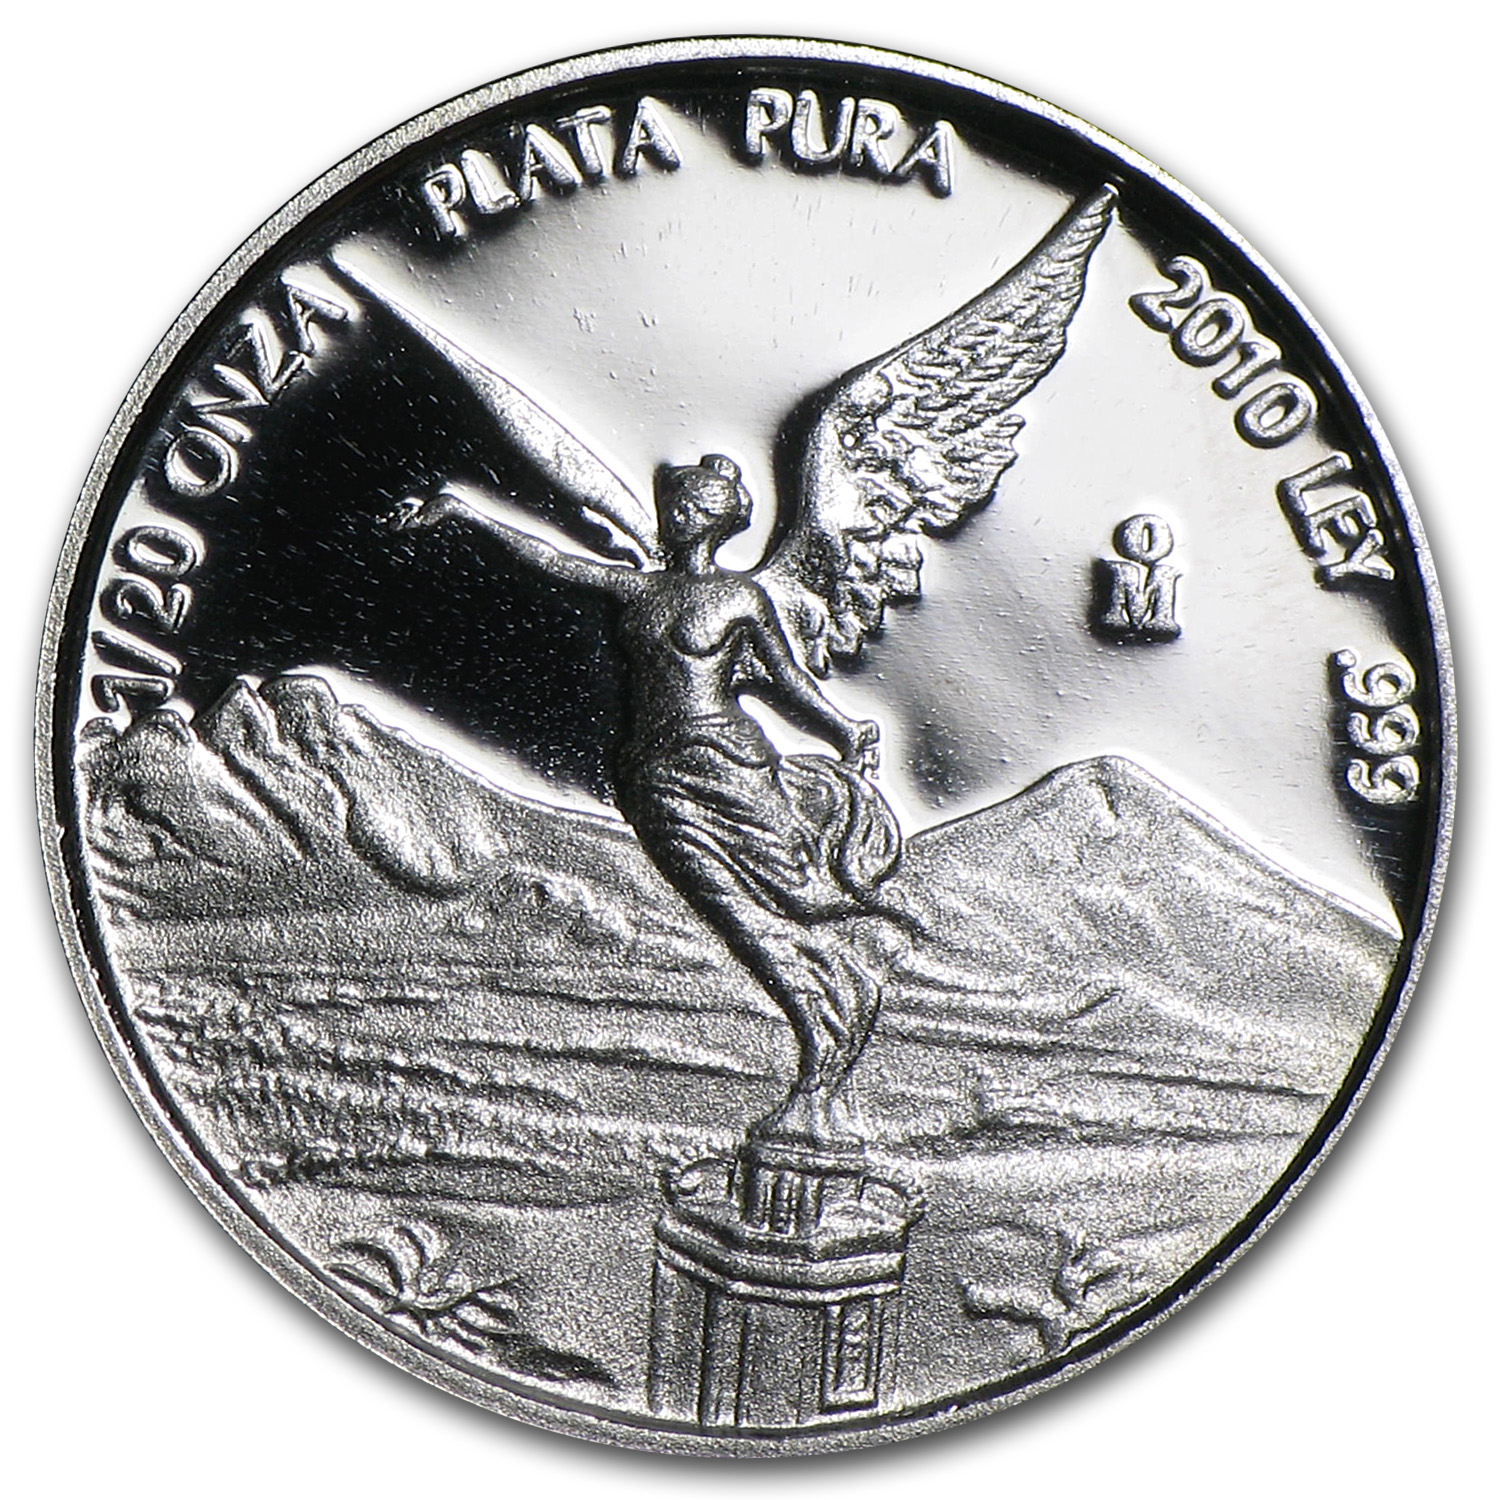 2010 Mexico 1/20 oz Silver Libertad Proof (In Capsule)